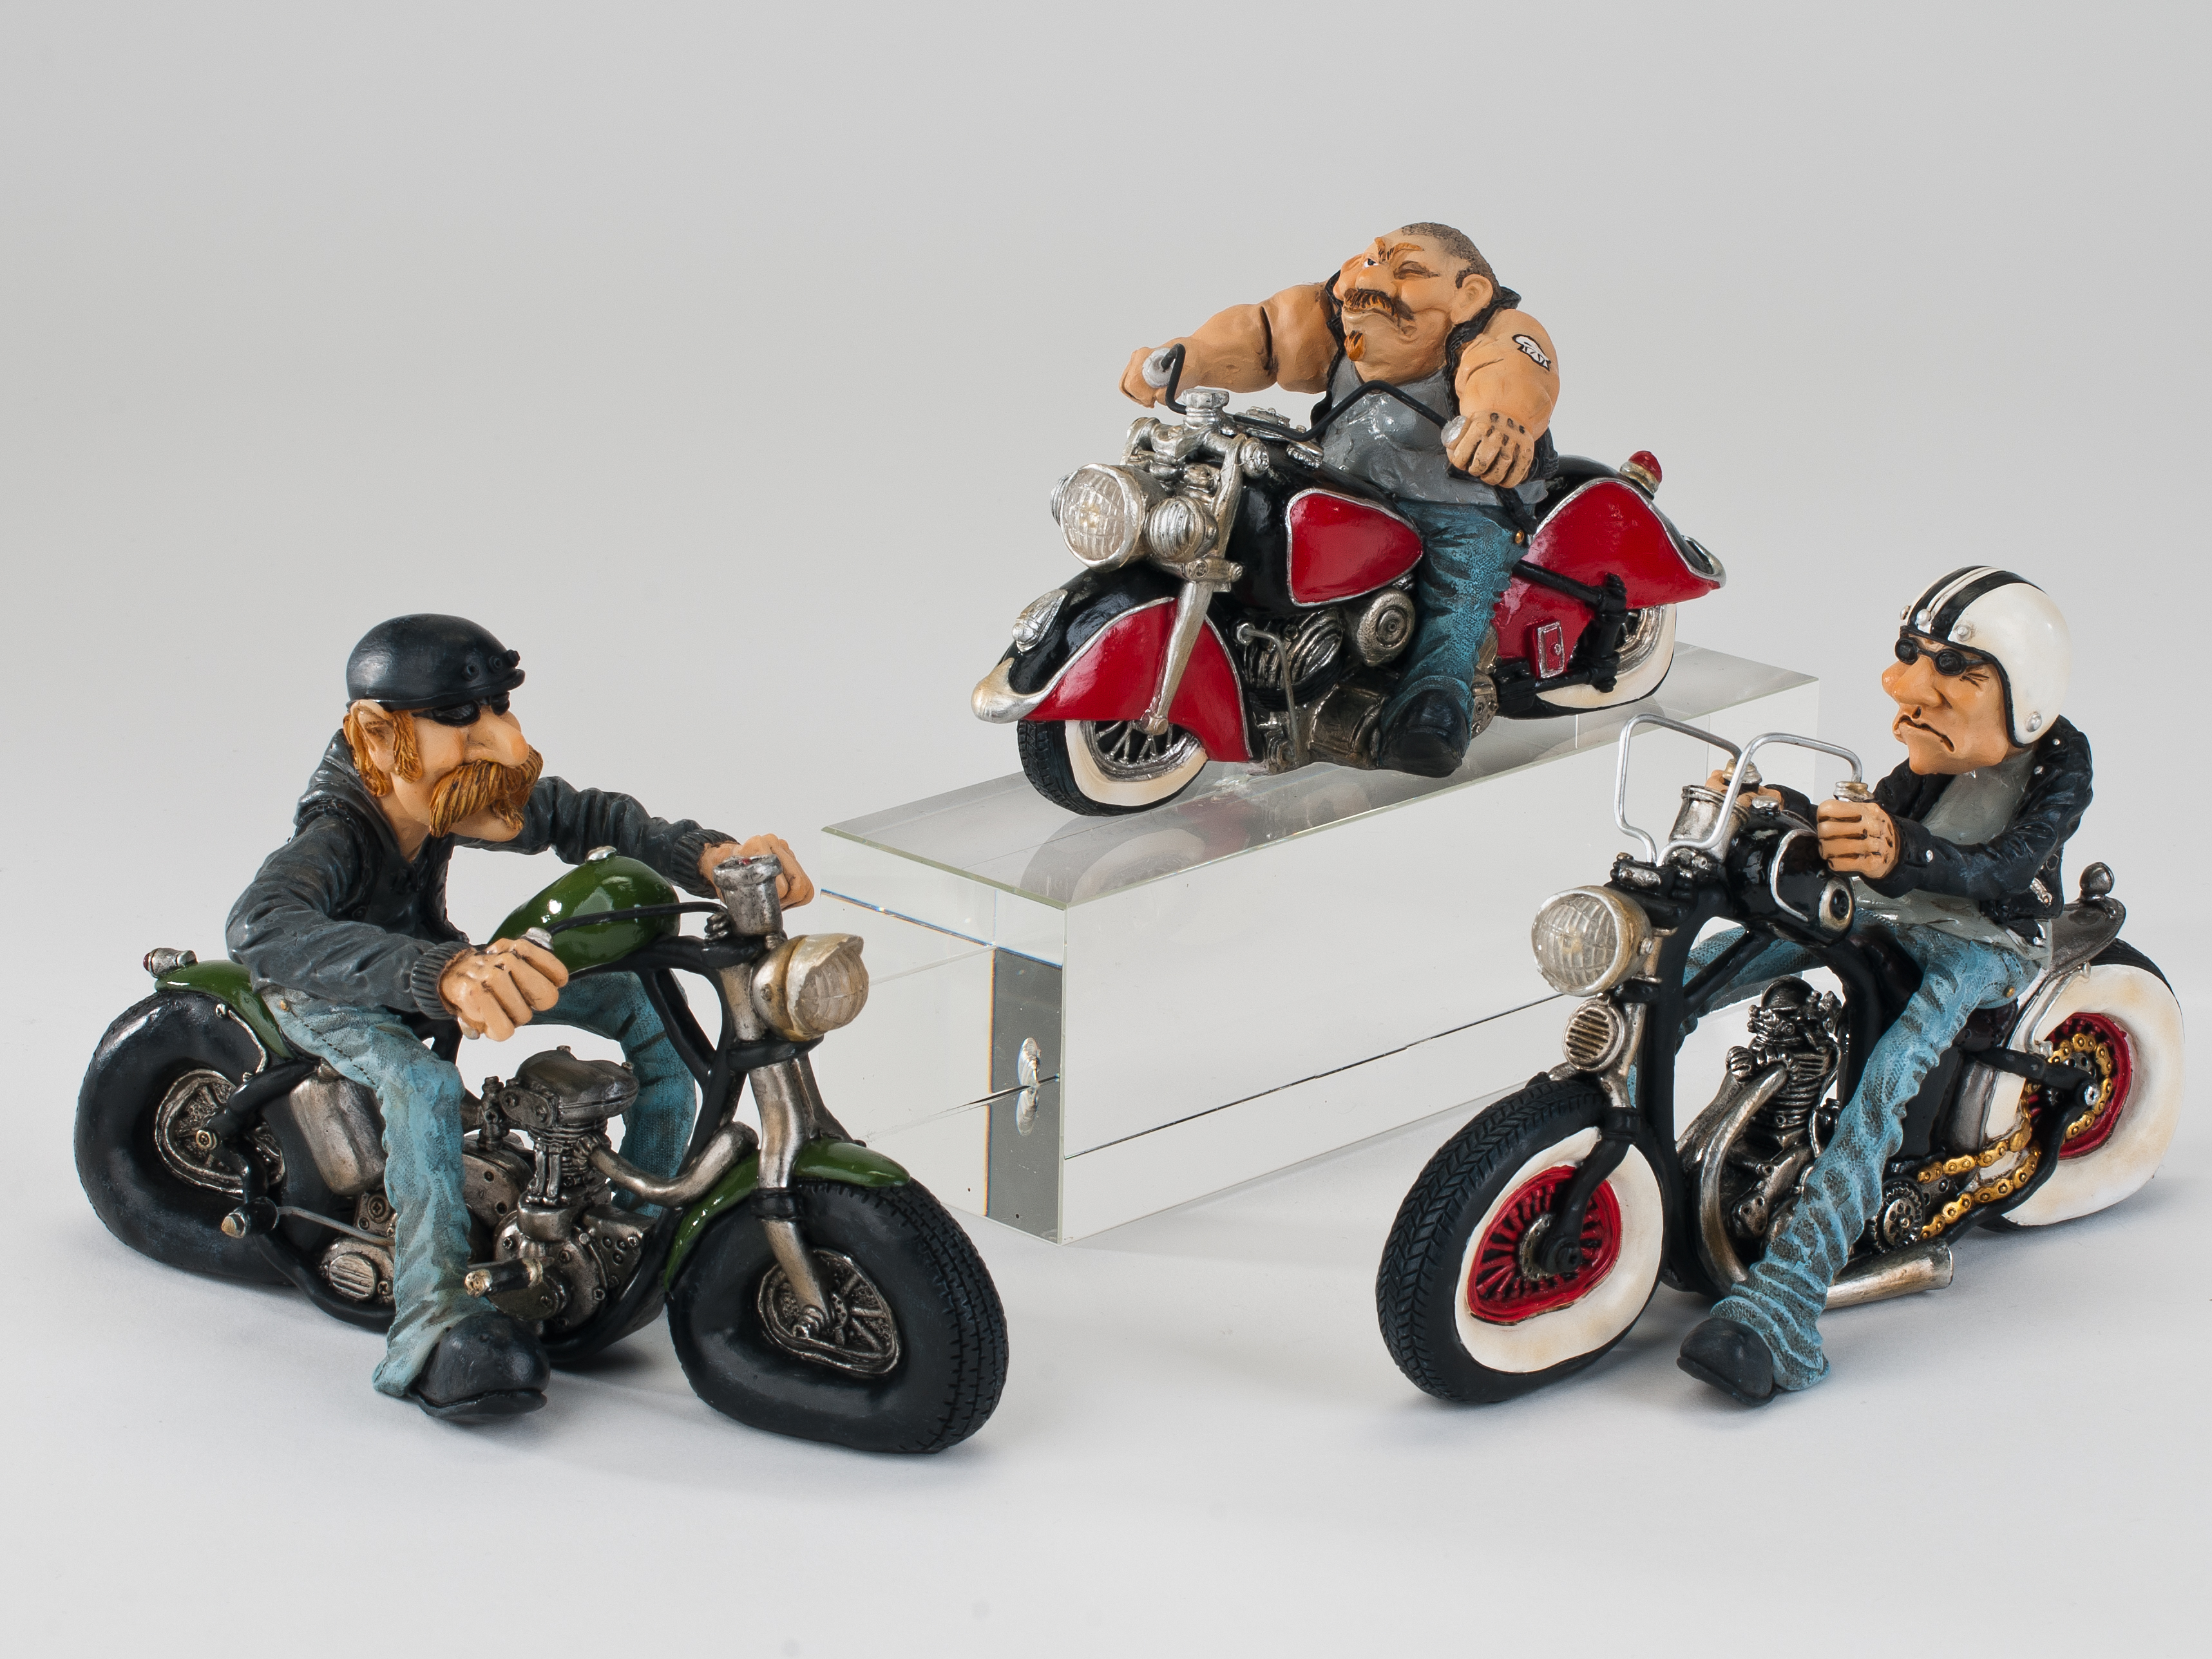 formano figur motorrad biker skulptur motorradfahrer. Black Bedroom Furniture Sets. Home Design Ideas